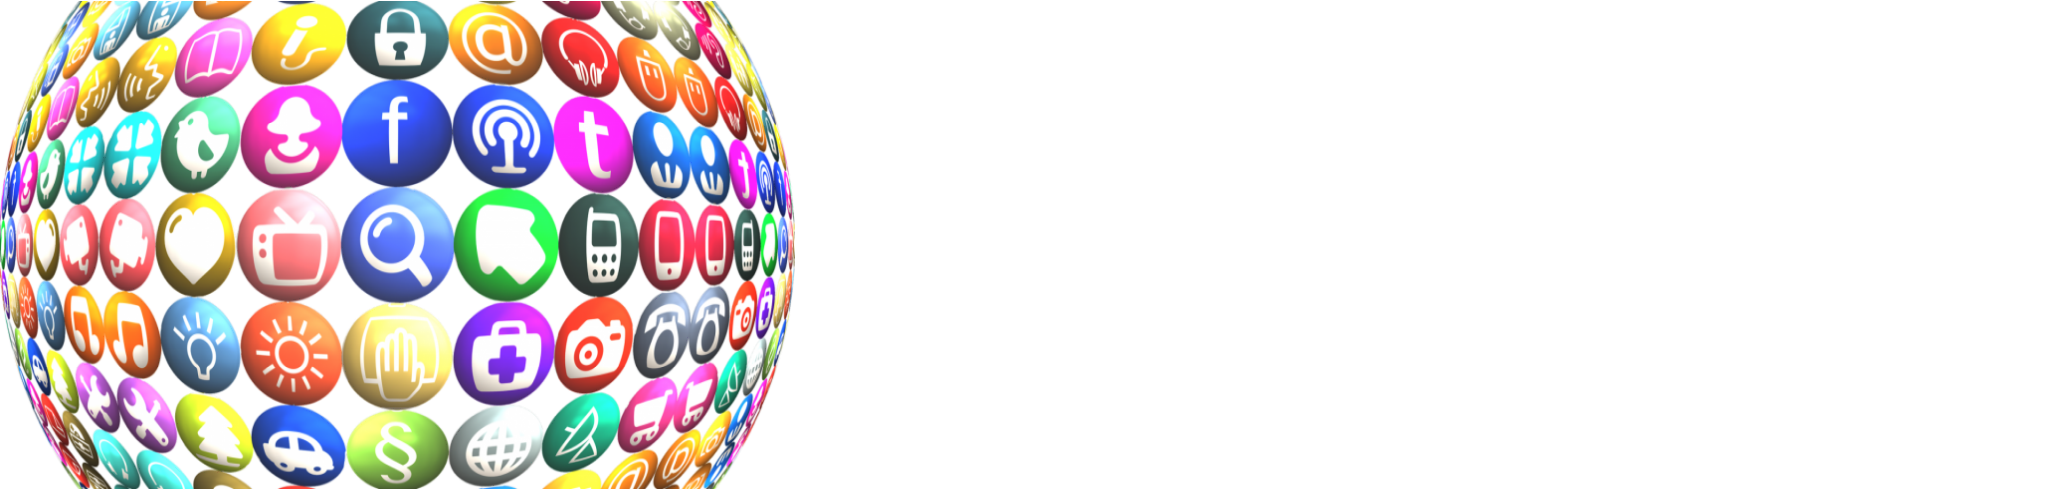 Virtual Event Entertainment